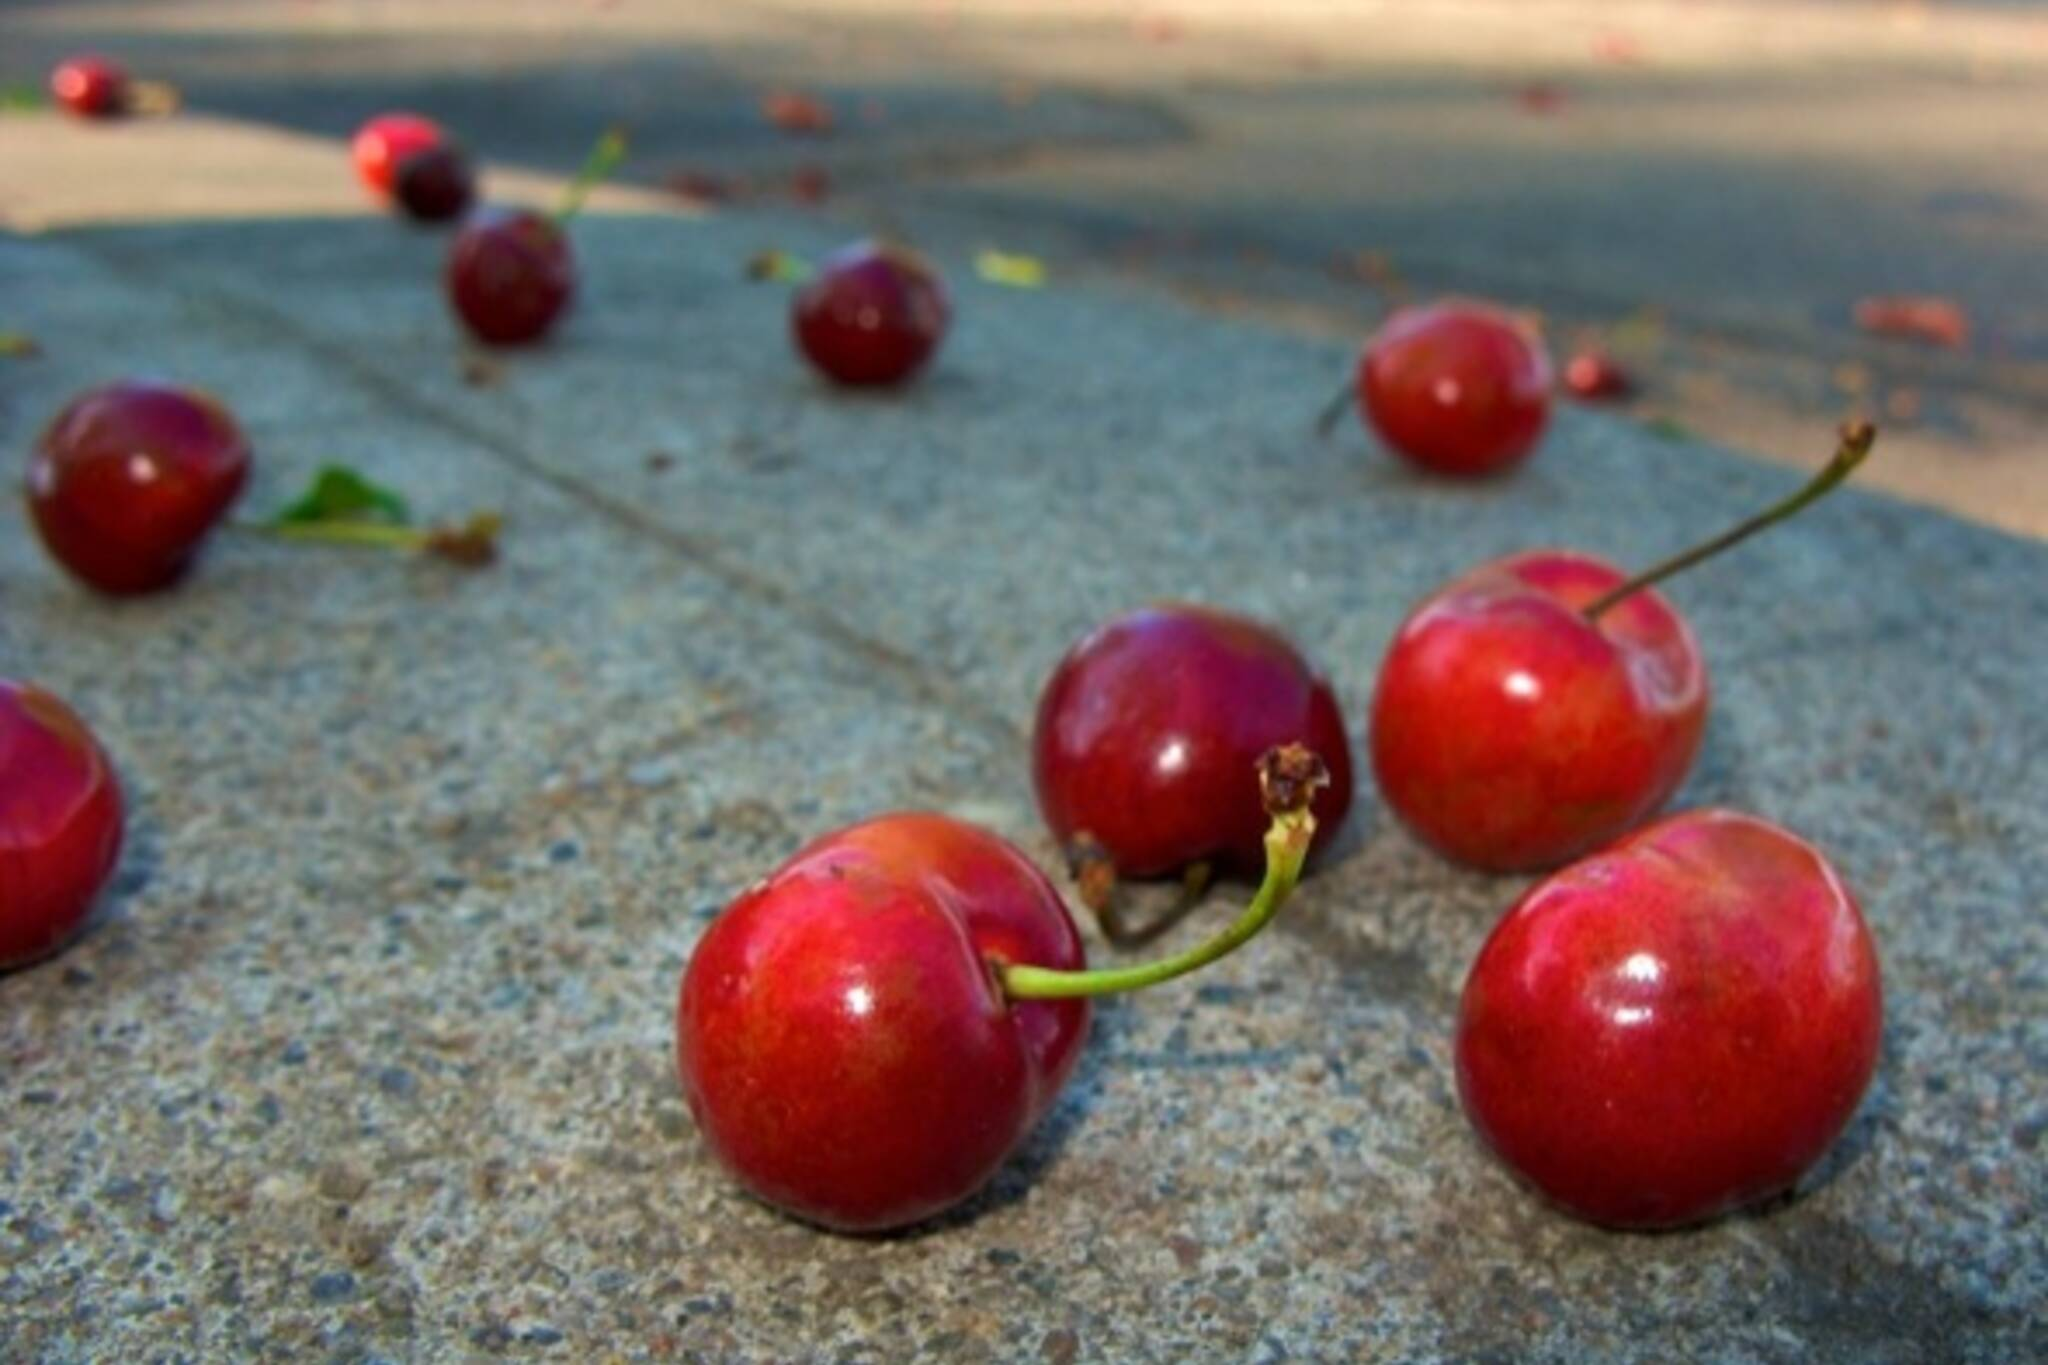 Spilled Cherries